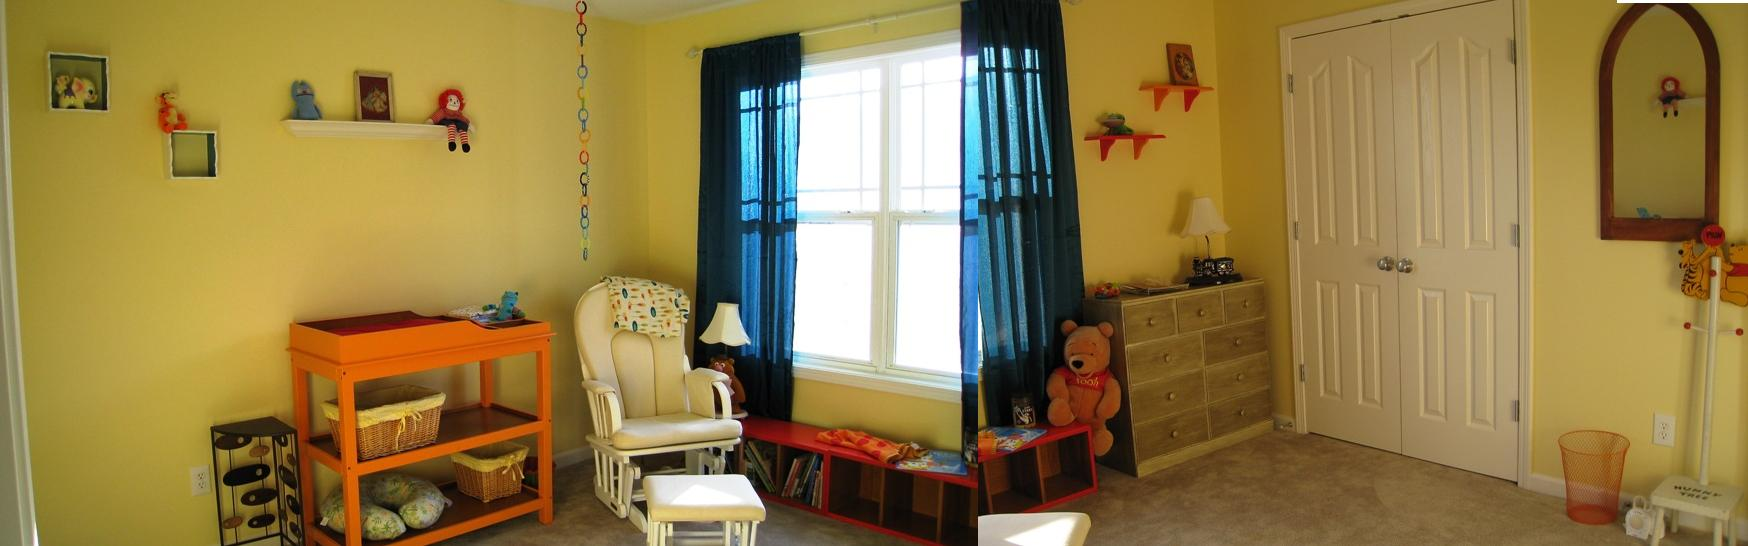 Nursery Panoramic